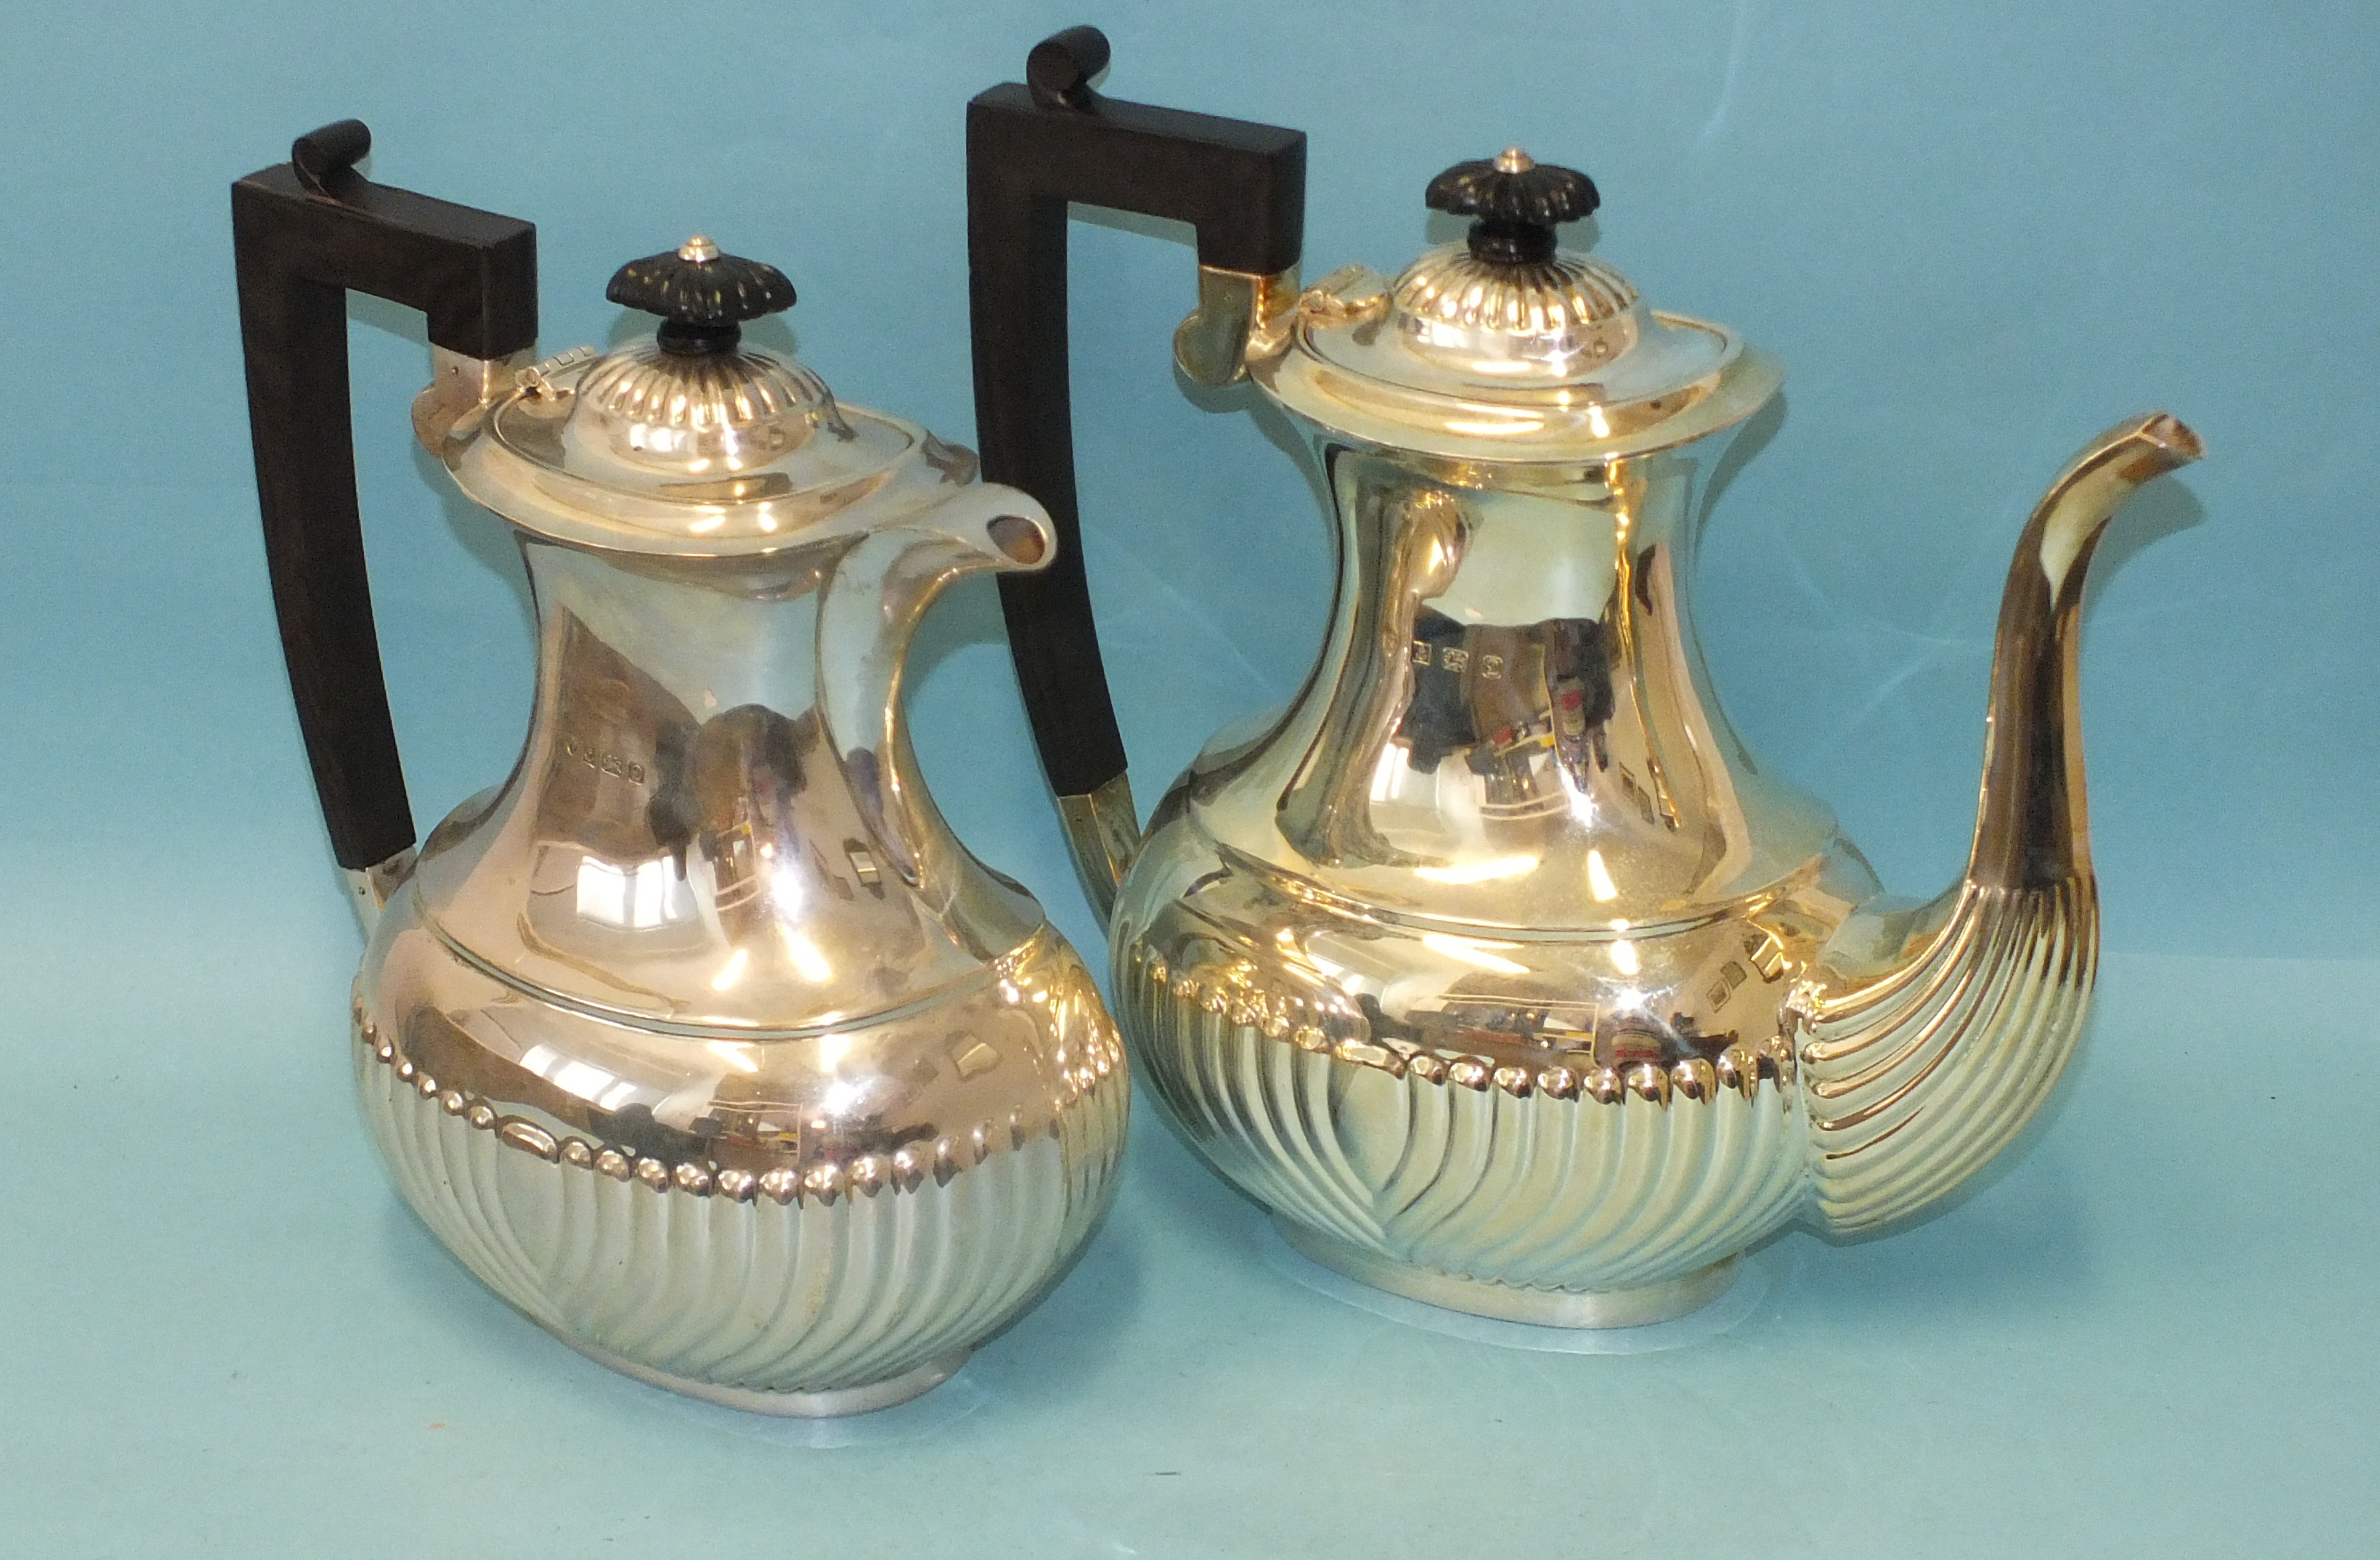 A modern silver half-gadrooned coffee pot and hot water jug, makers J B Chatterley & Sons Ltd,